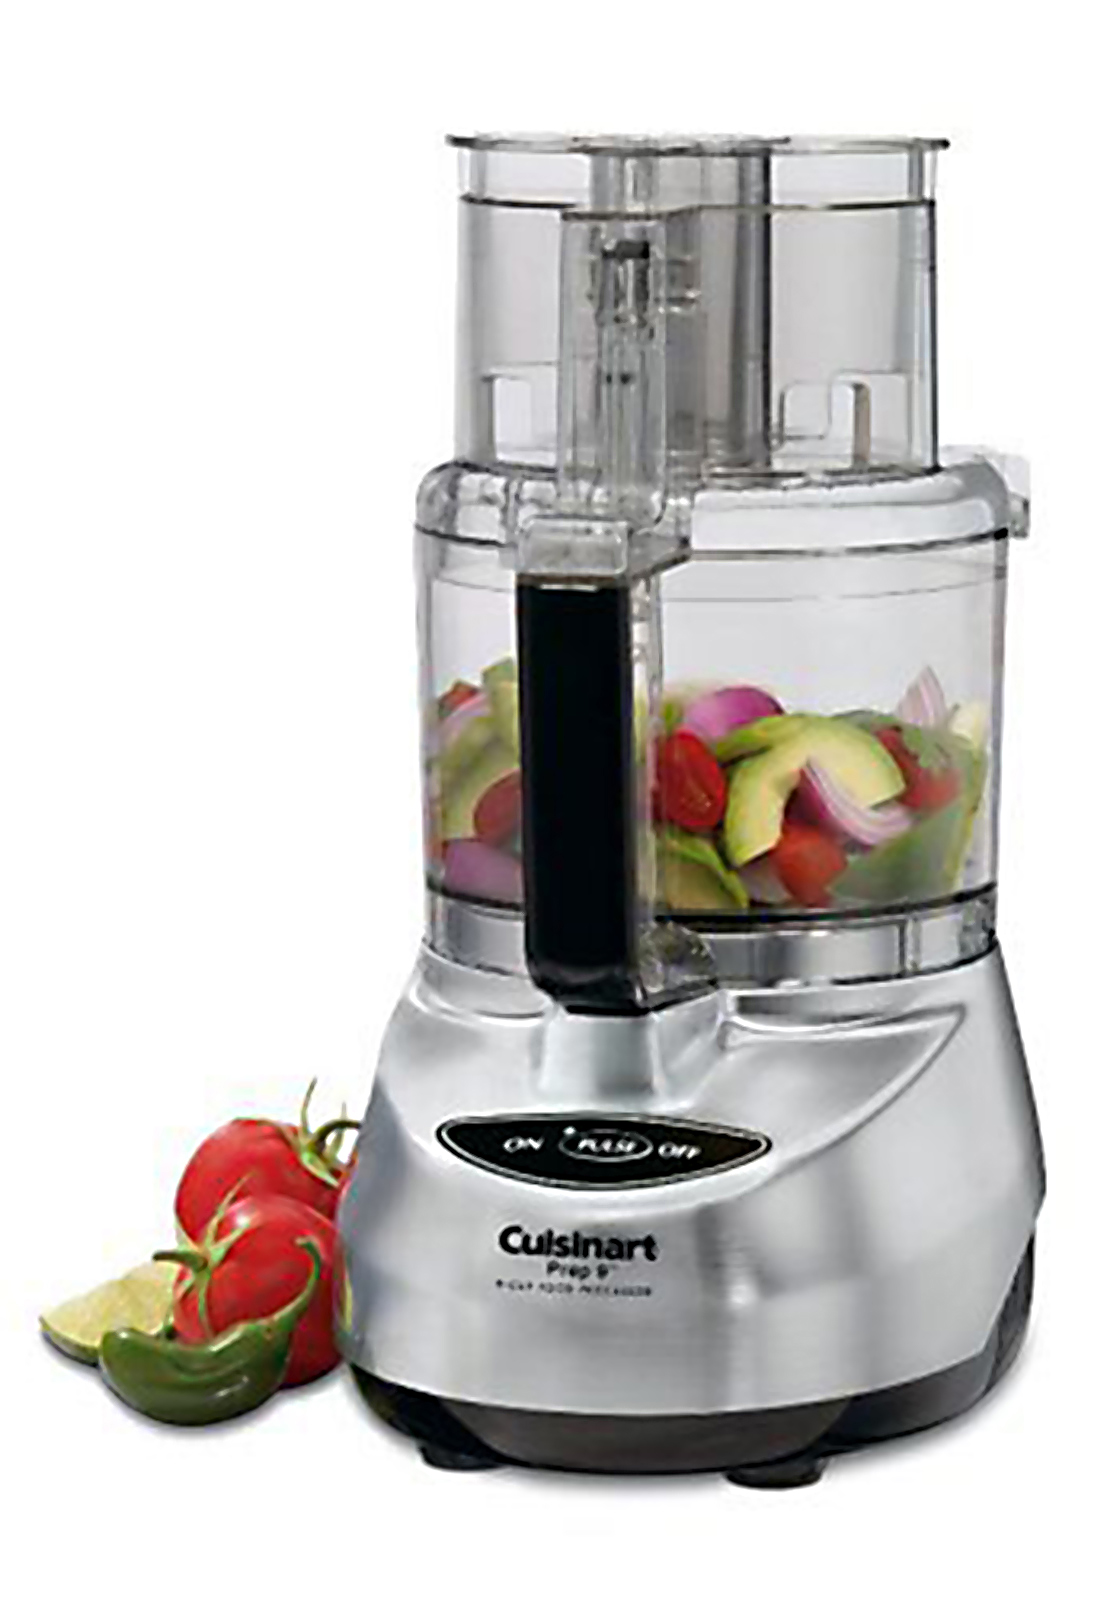 Cuisinart 9-Cup Prep Plus Food Processor